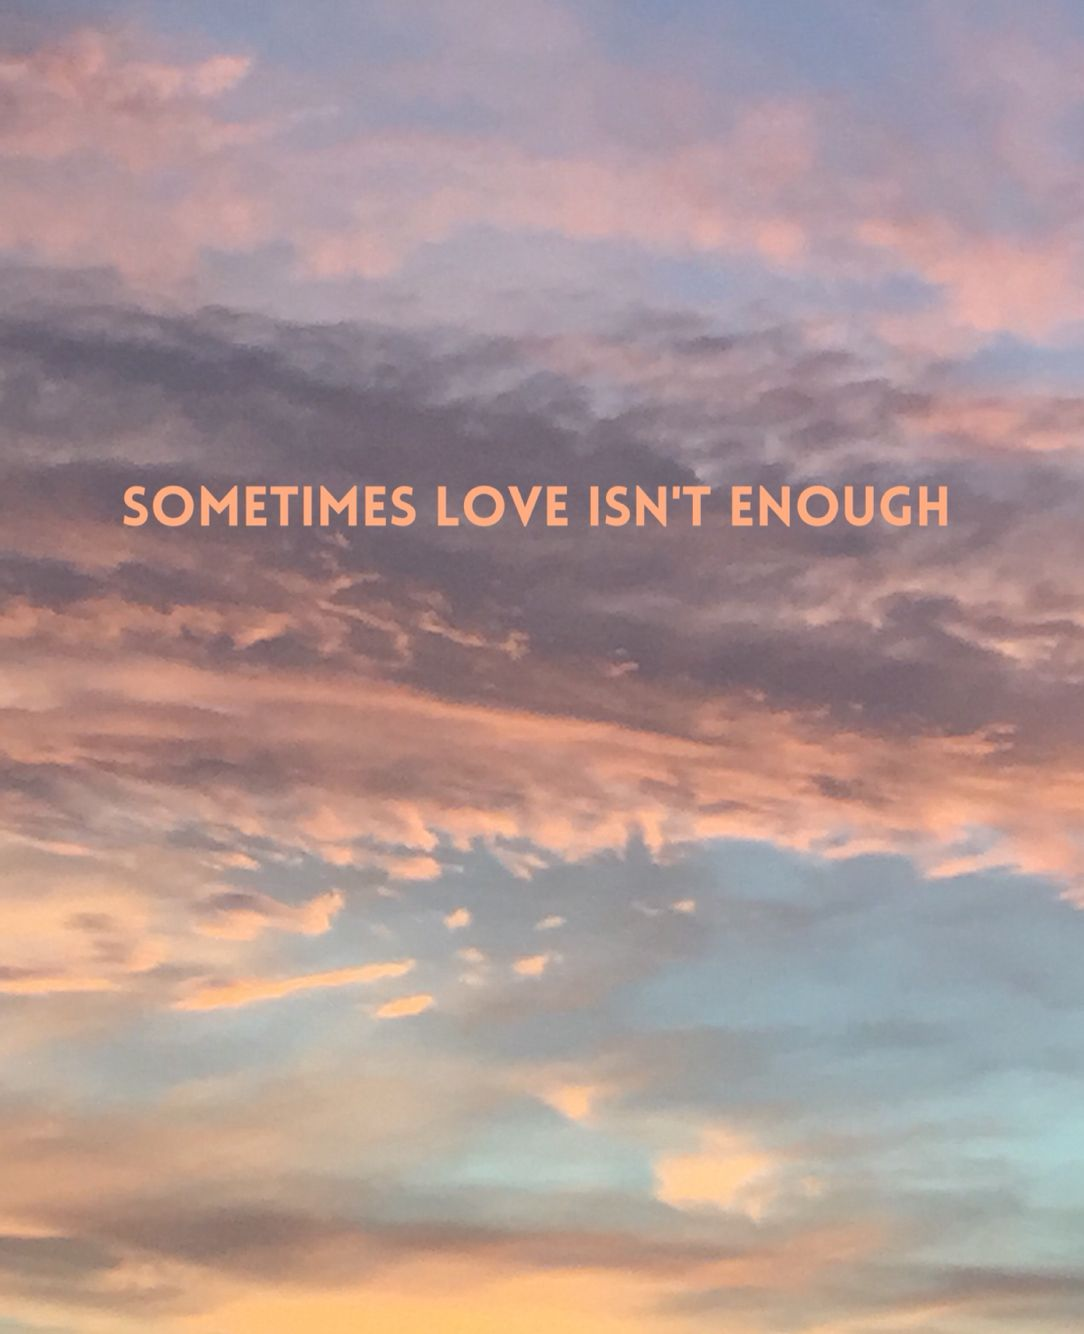 Quote Backgrounds, Aesthetic Captions, Mood